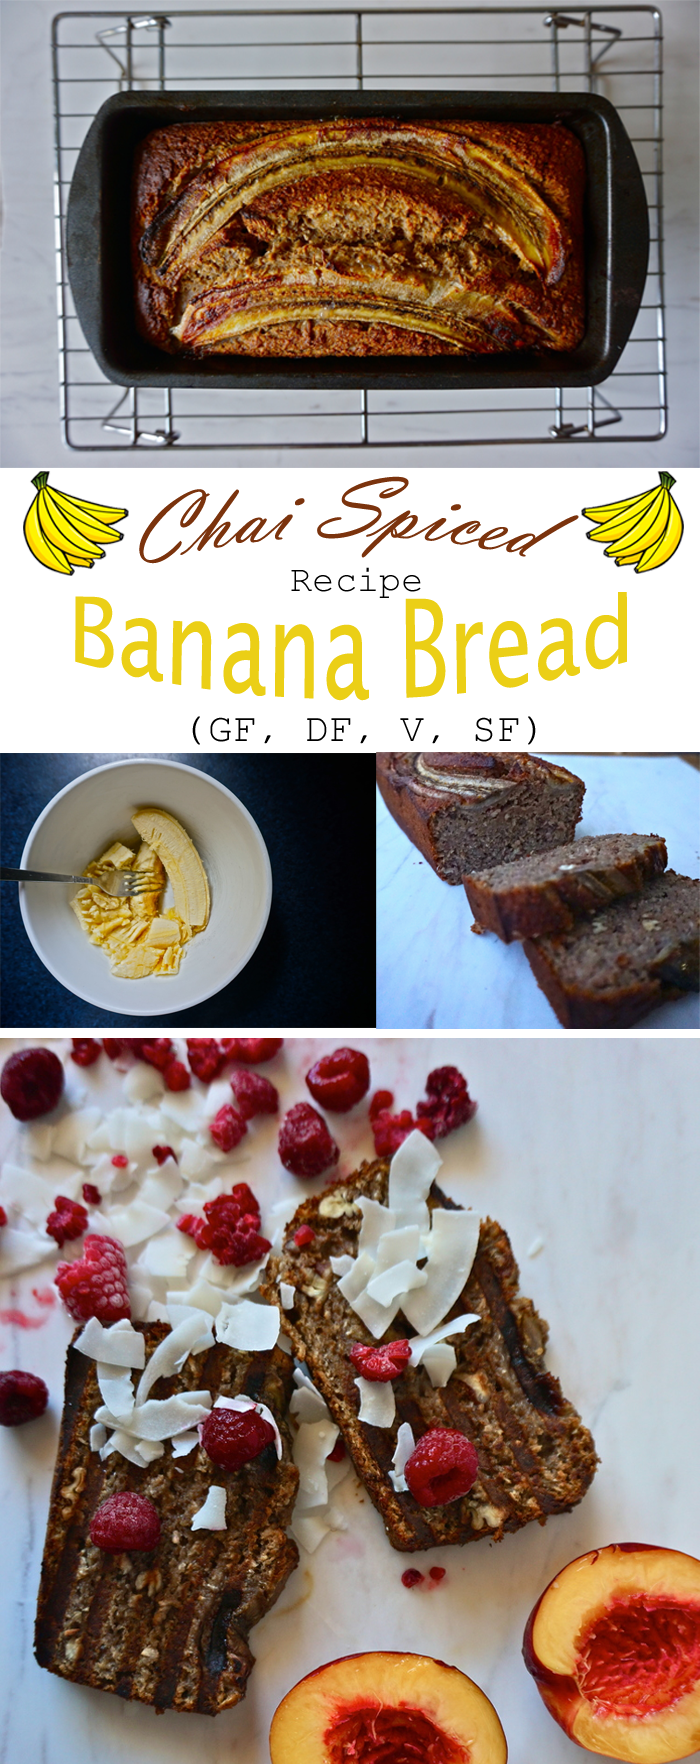 Chai Spiced Banana Bread | Gluten Free, Dairy Free | Full Recipe